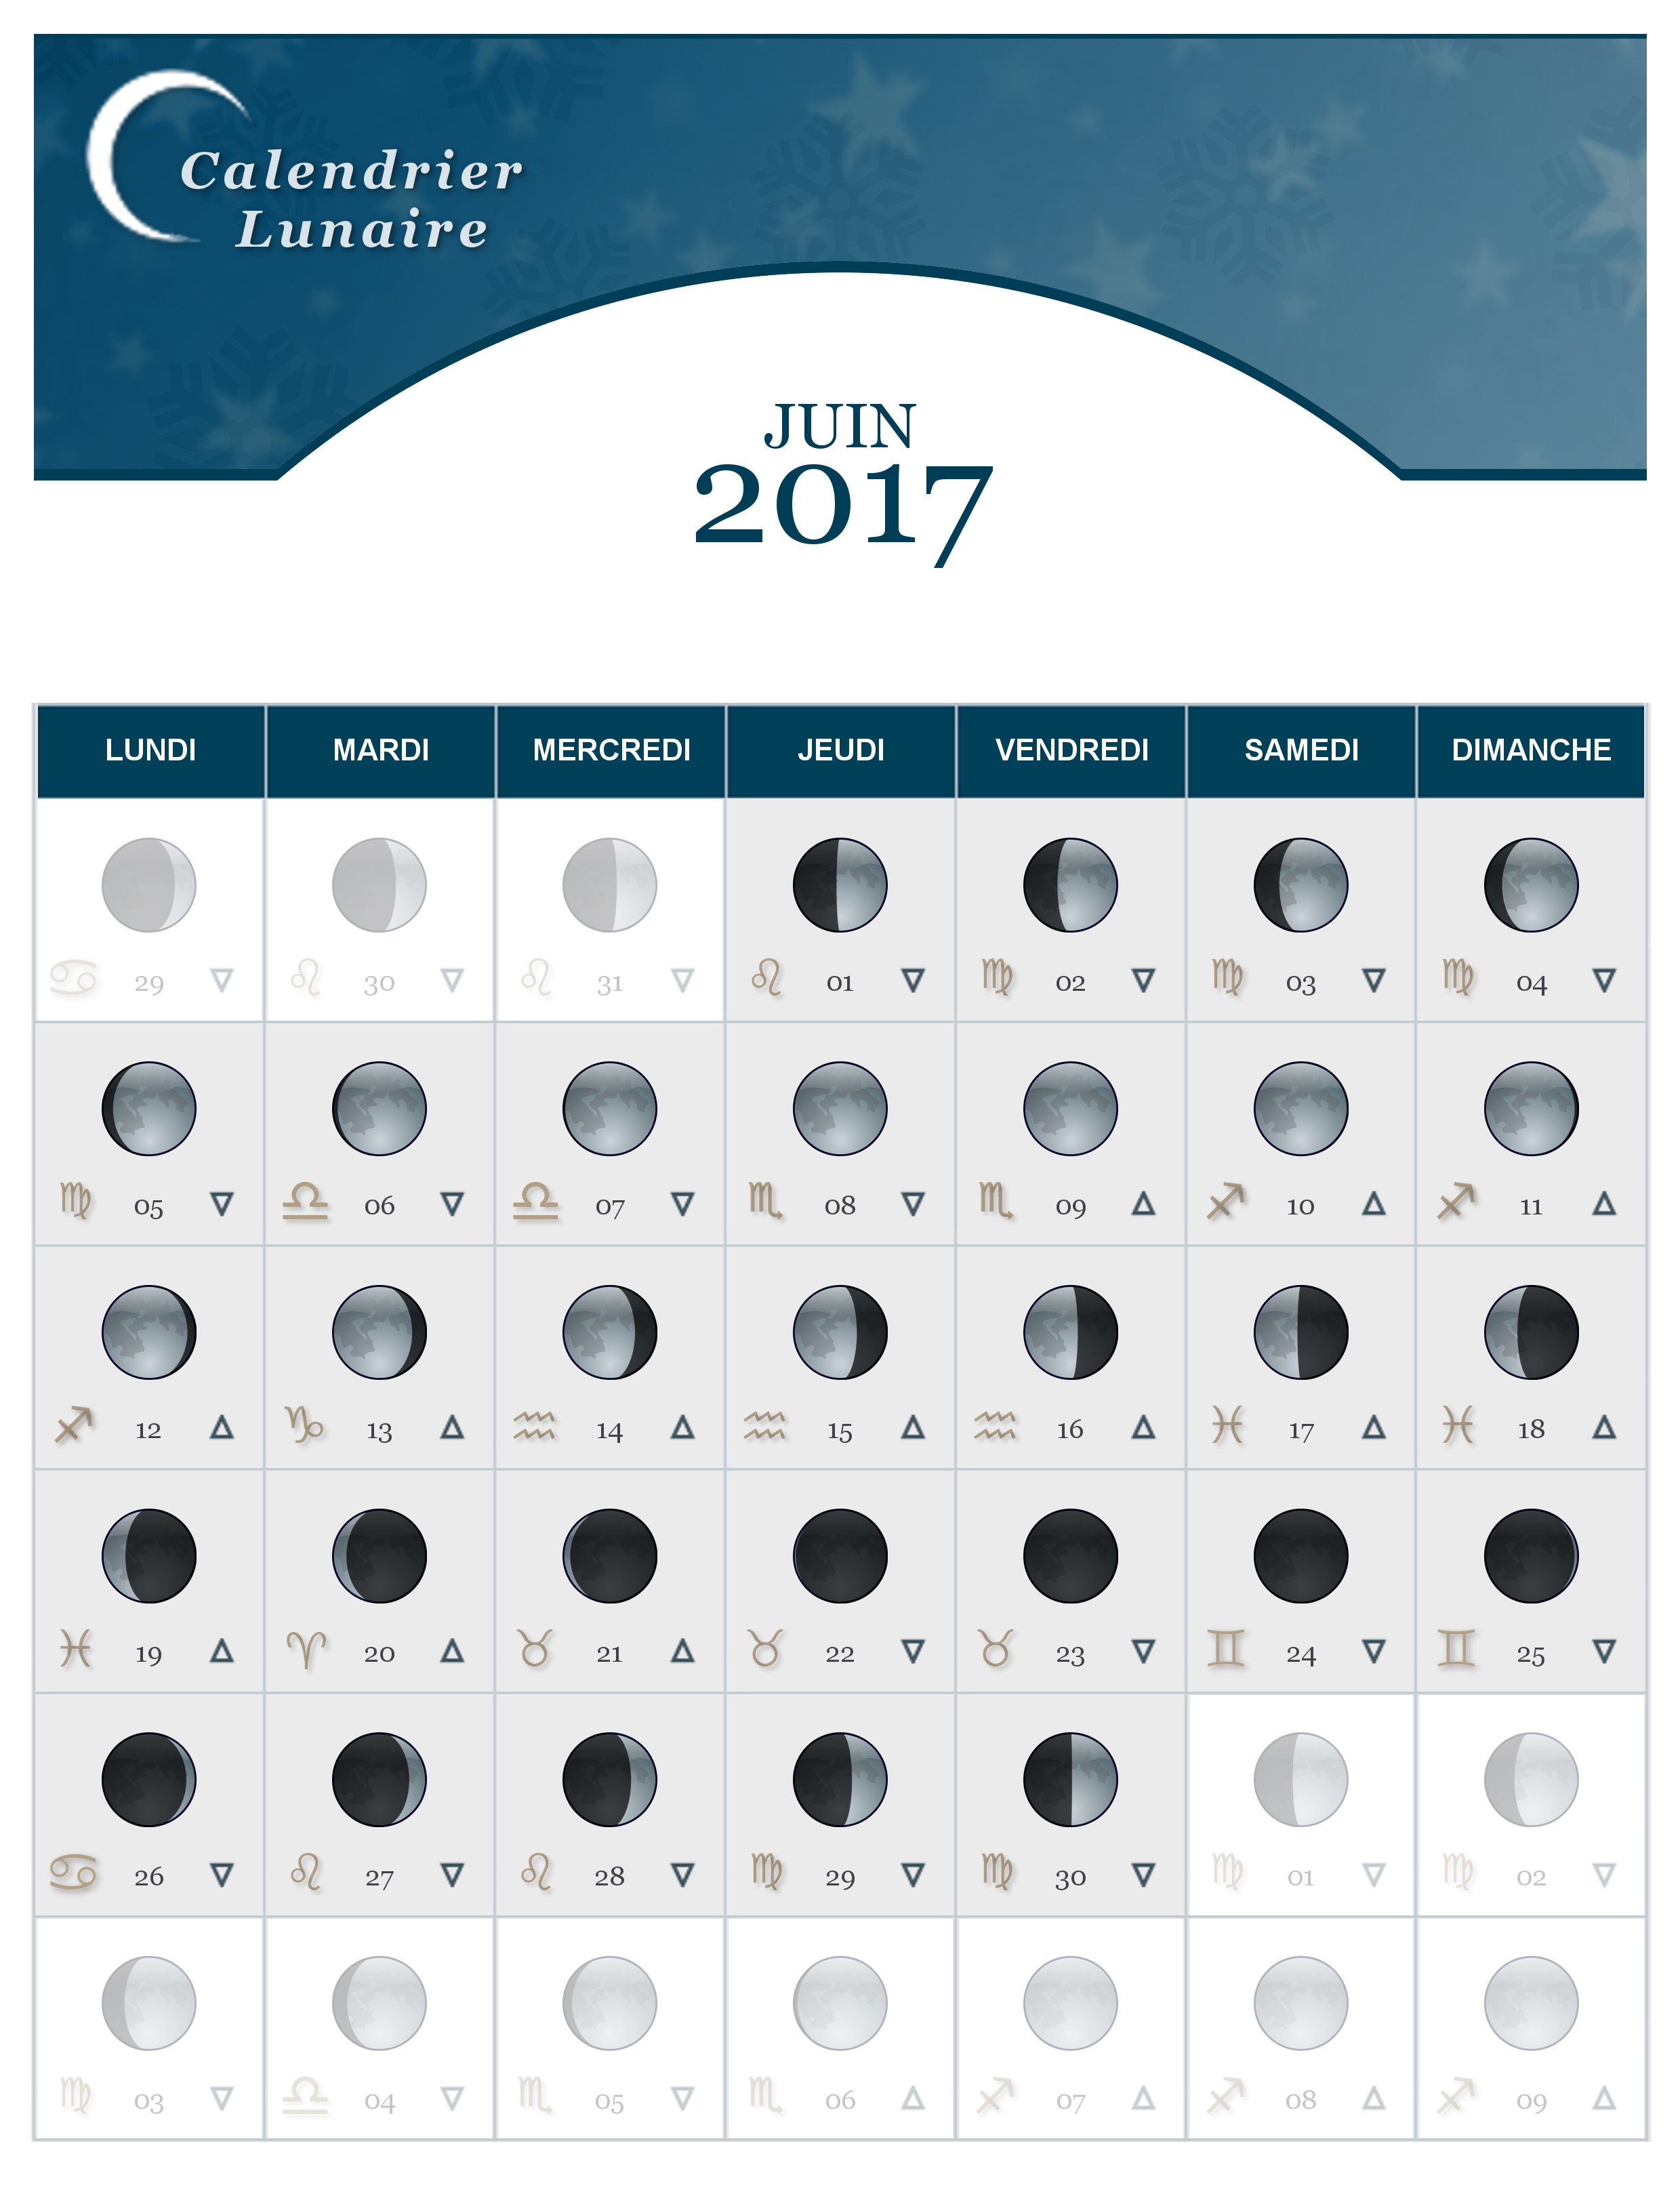 calendrier lunaire du mois de juin 2017 the lucky cath concept. Black Bedroom Furniture Sets. Home Design Ideas